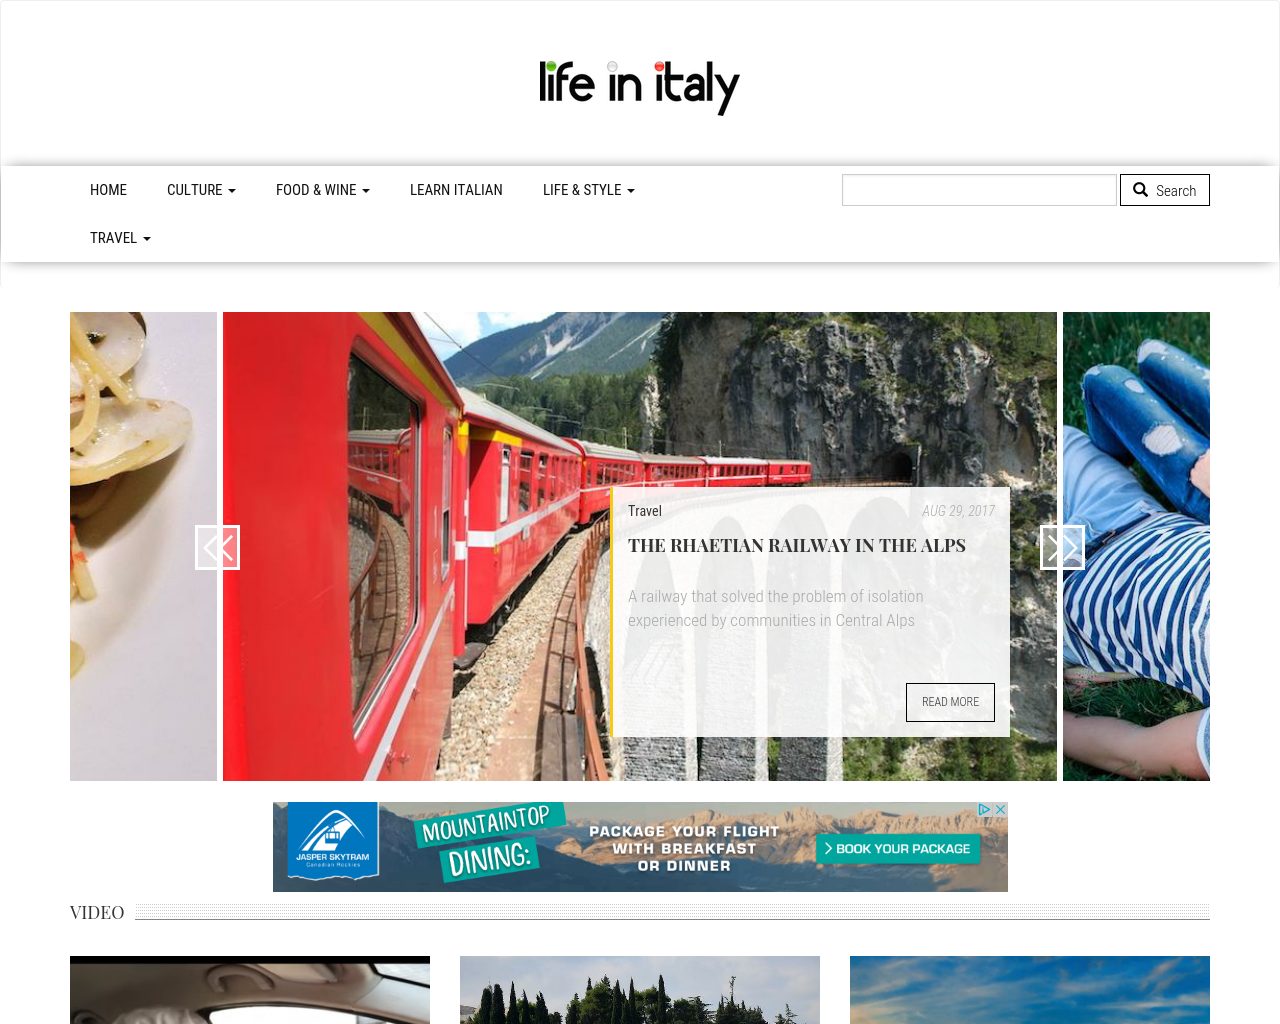 Life-in-Italy-Advertising-Reviews-Pricing